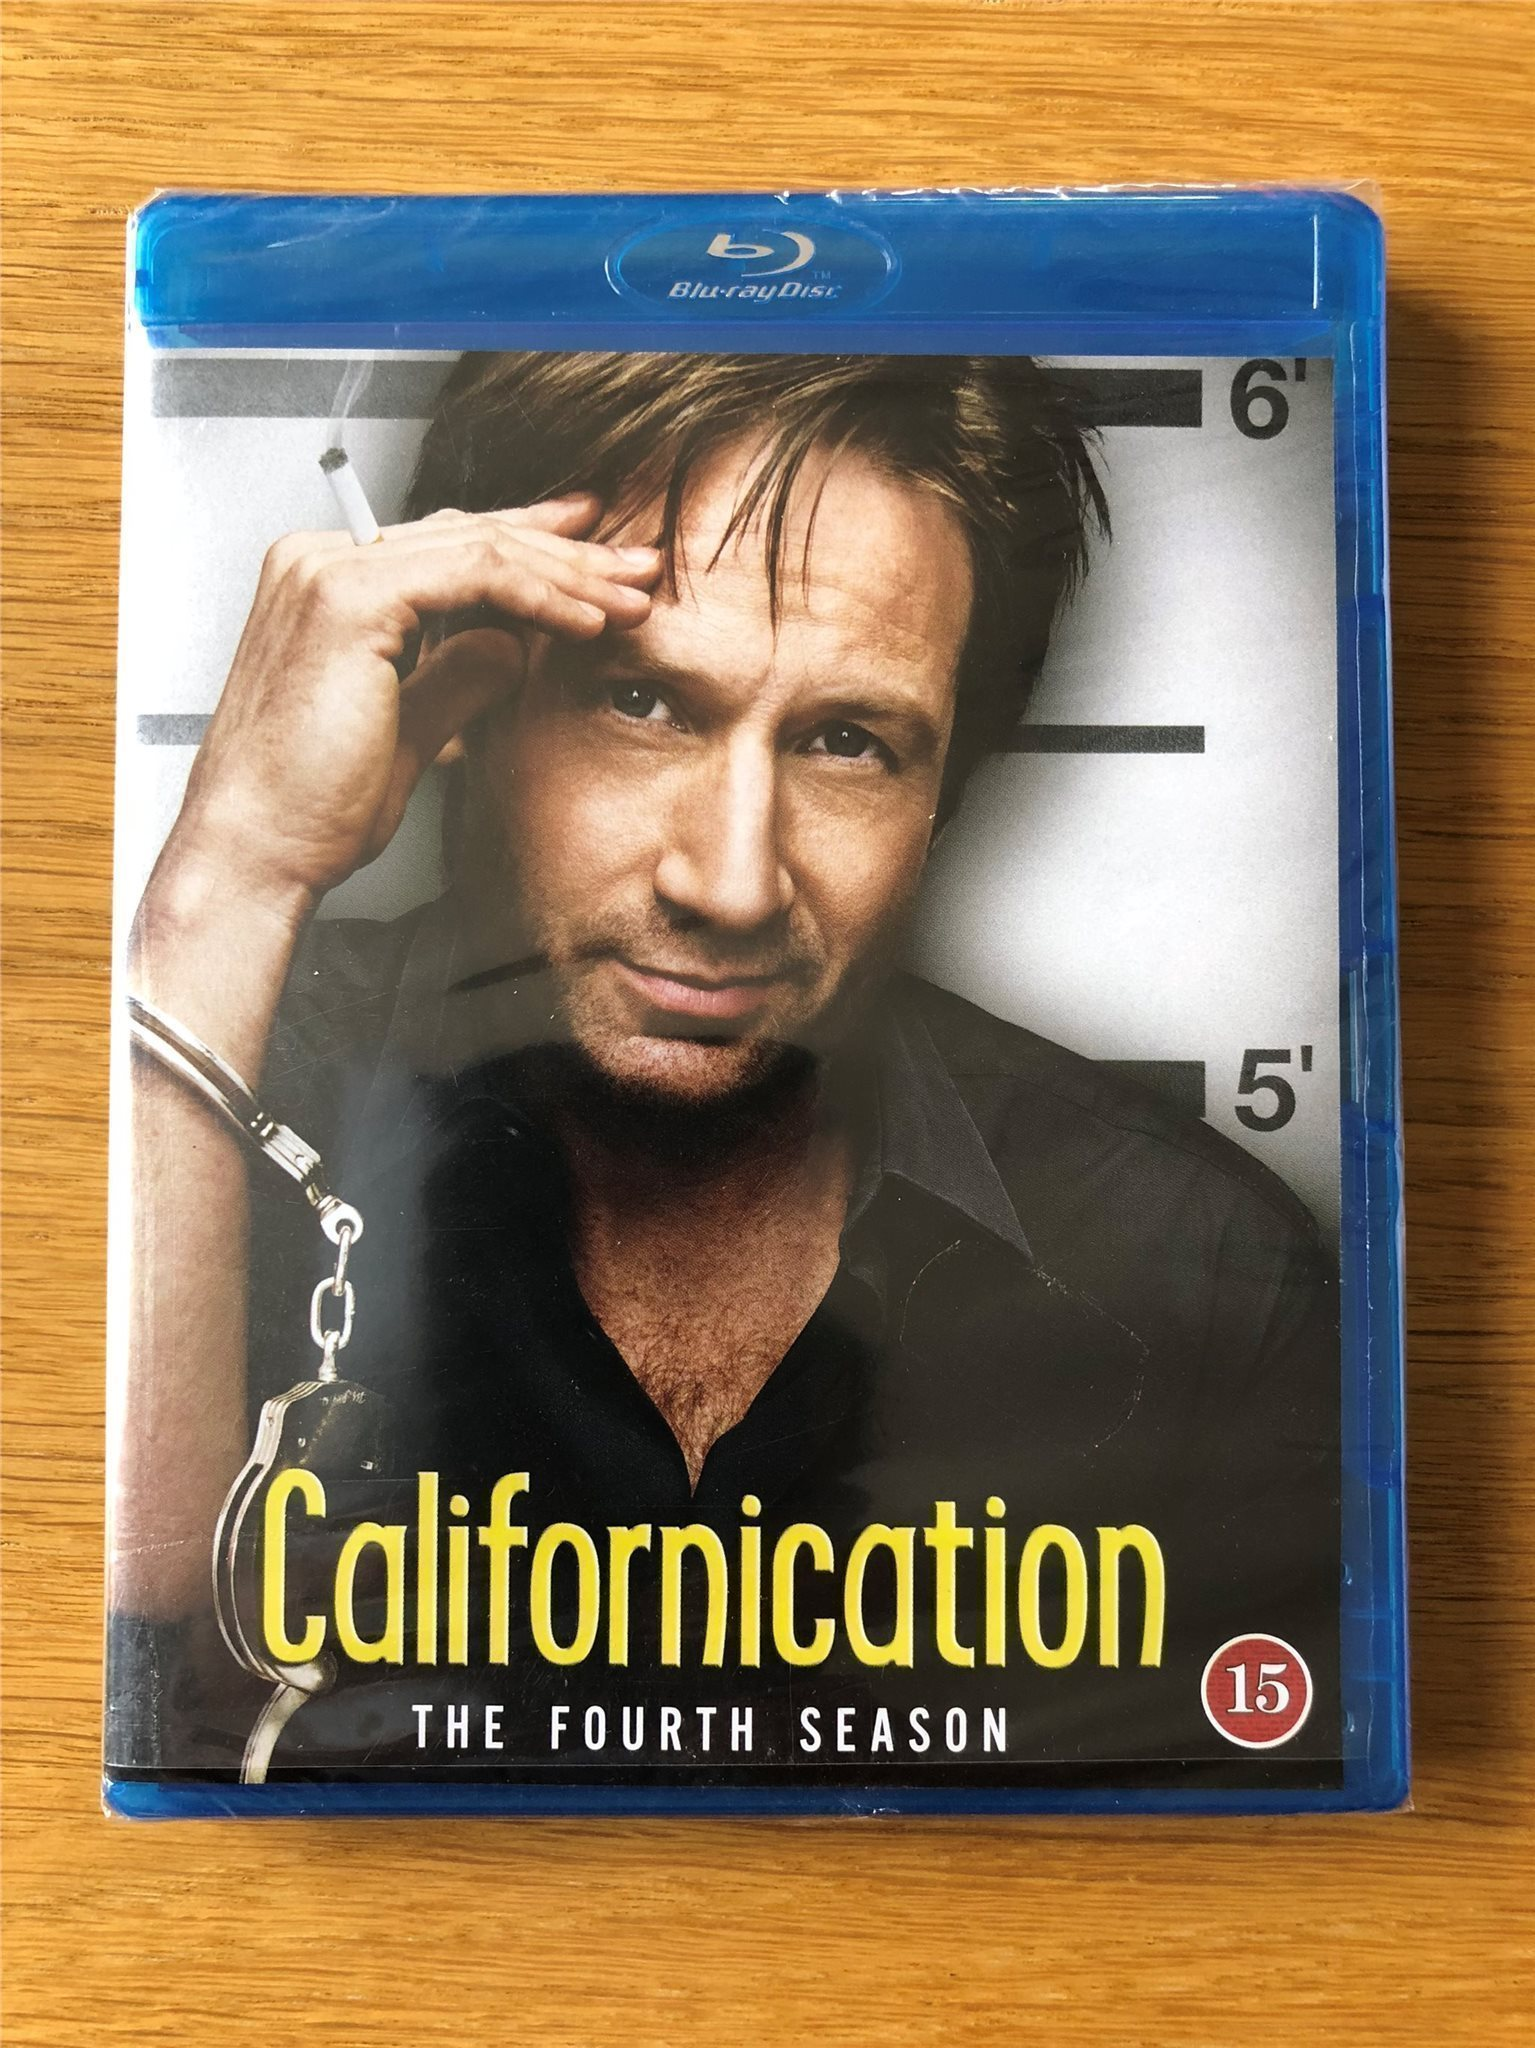 Californication - säsong 4. NY/inplastad! (Blu-ray box)